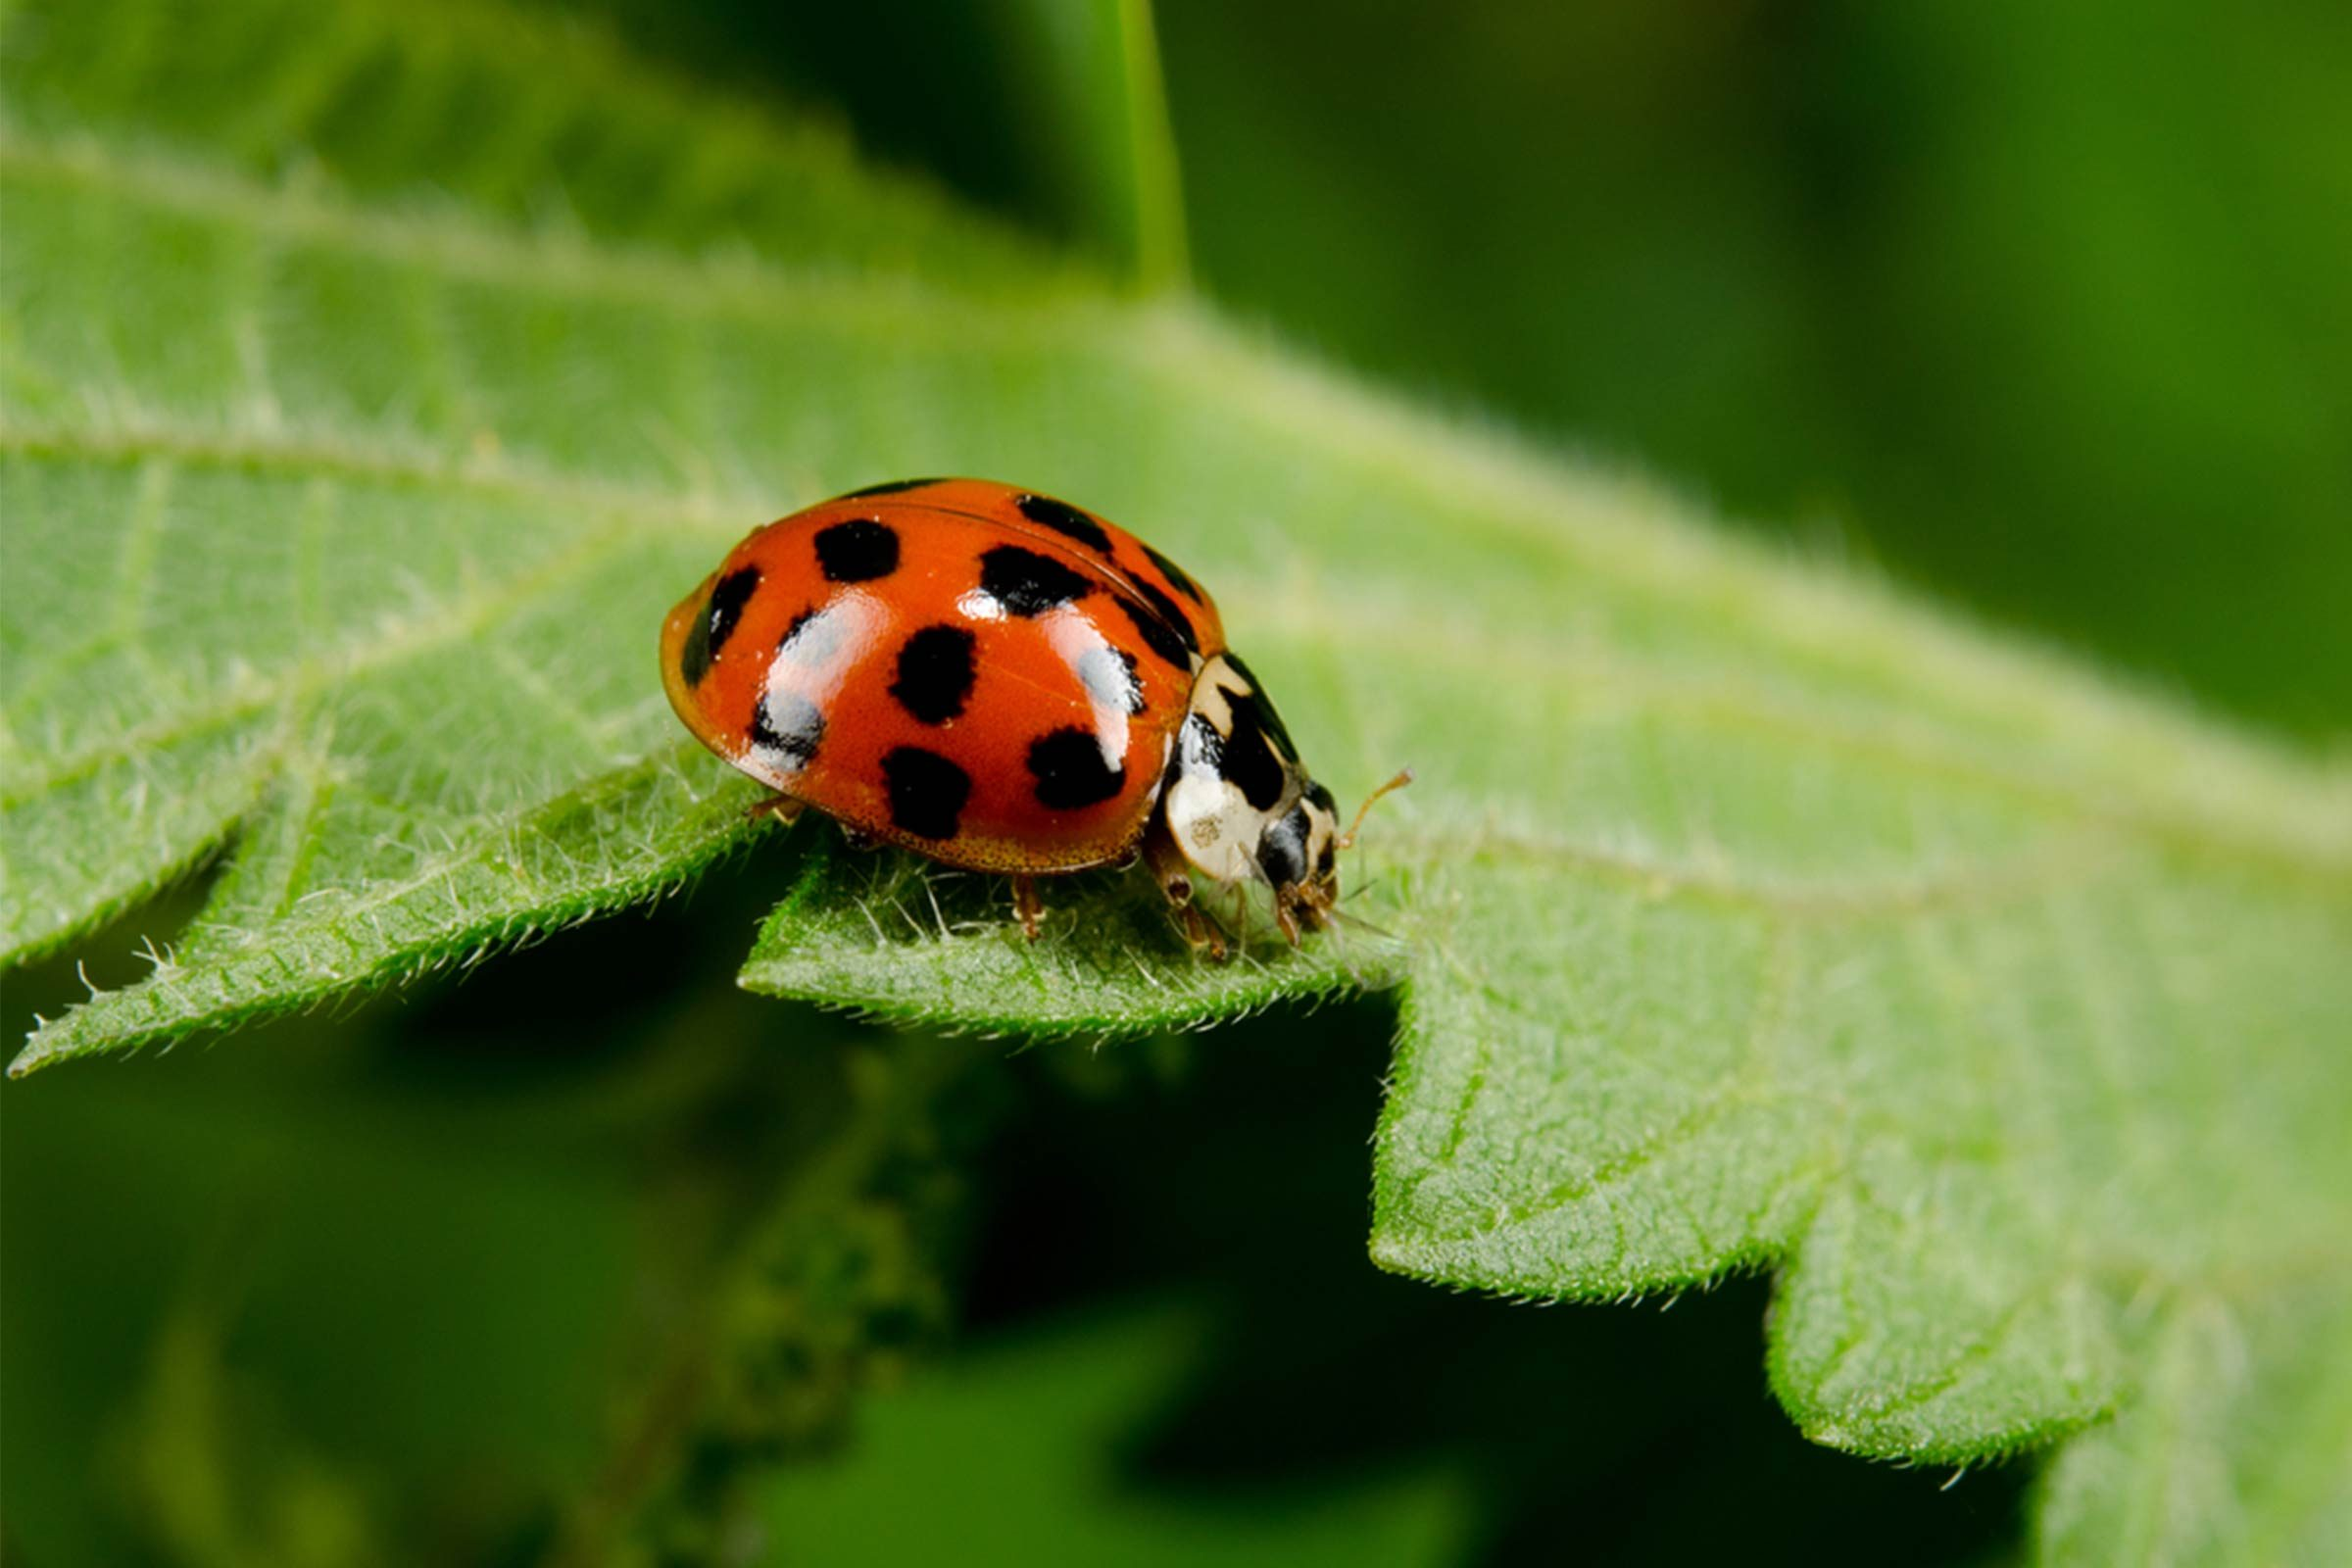 Asian Lady Beetles The Scary Ladybug Lookalike Reader S